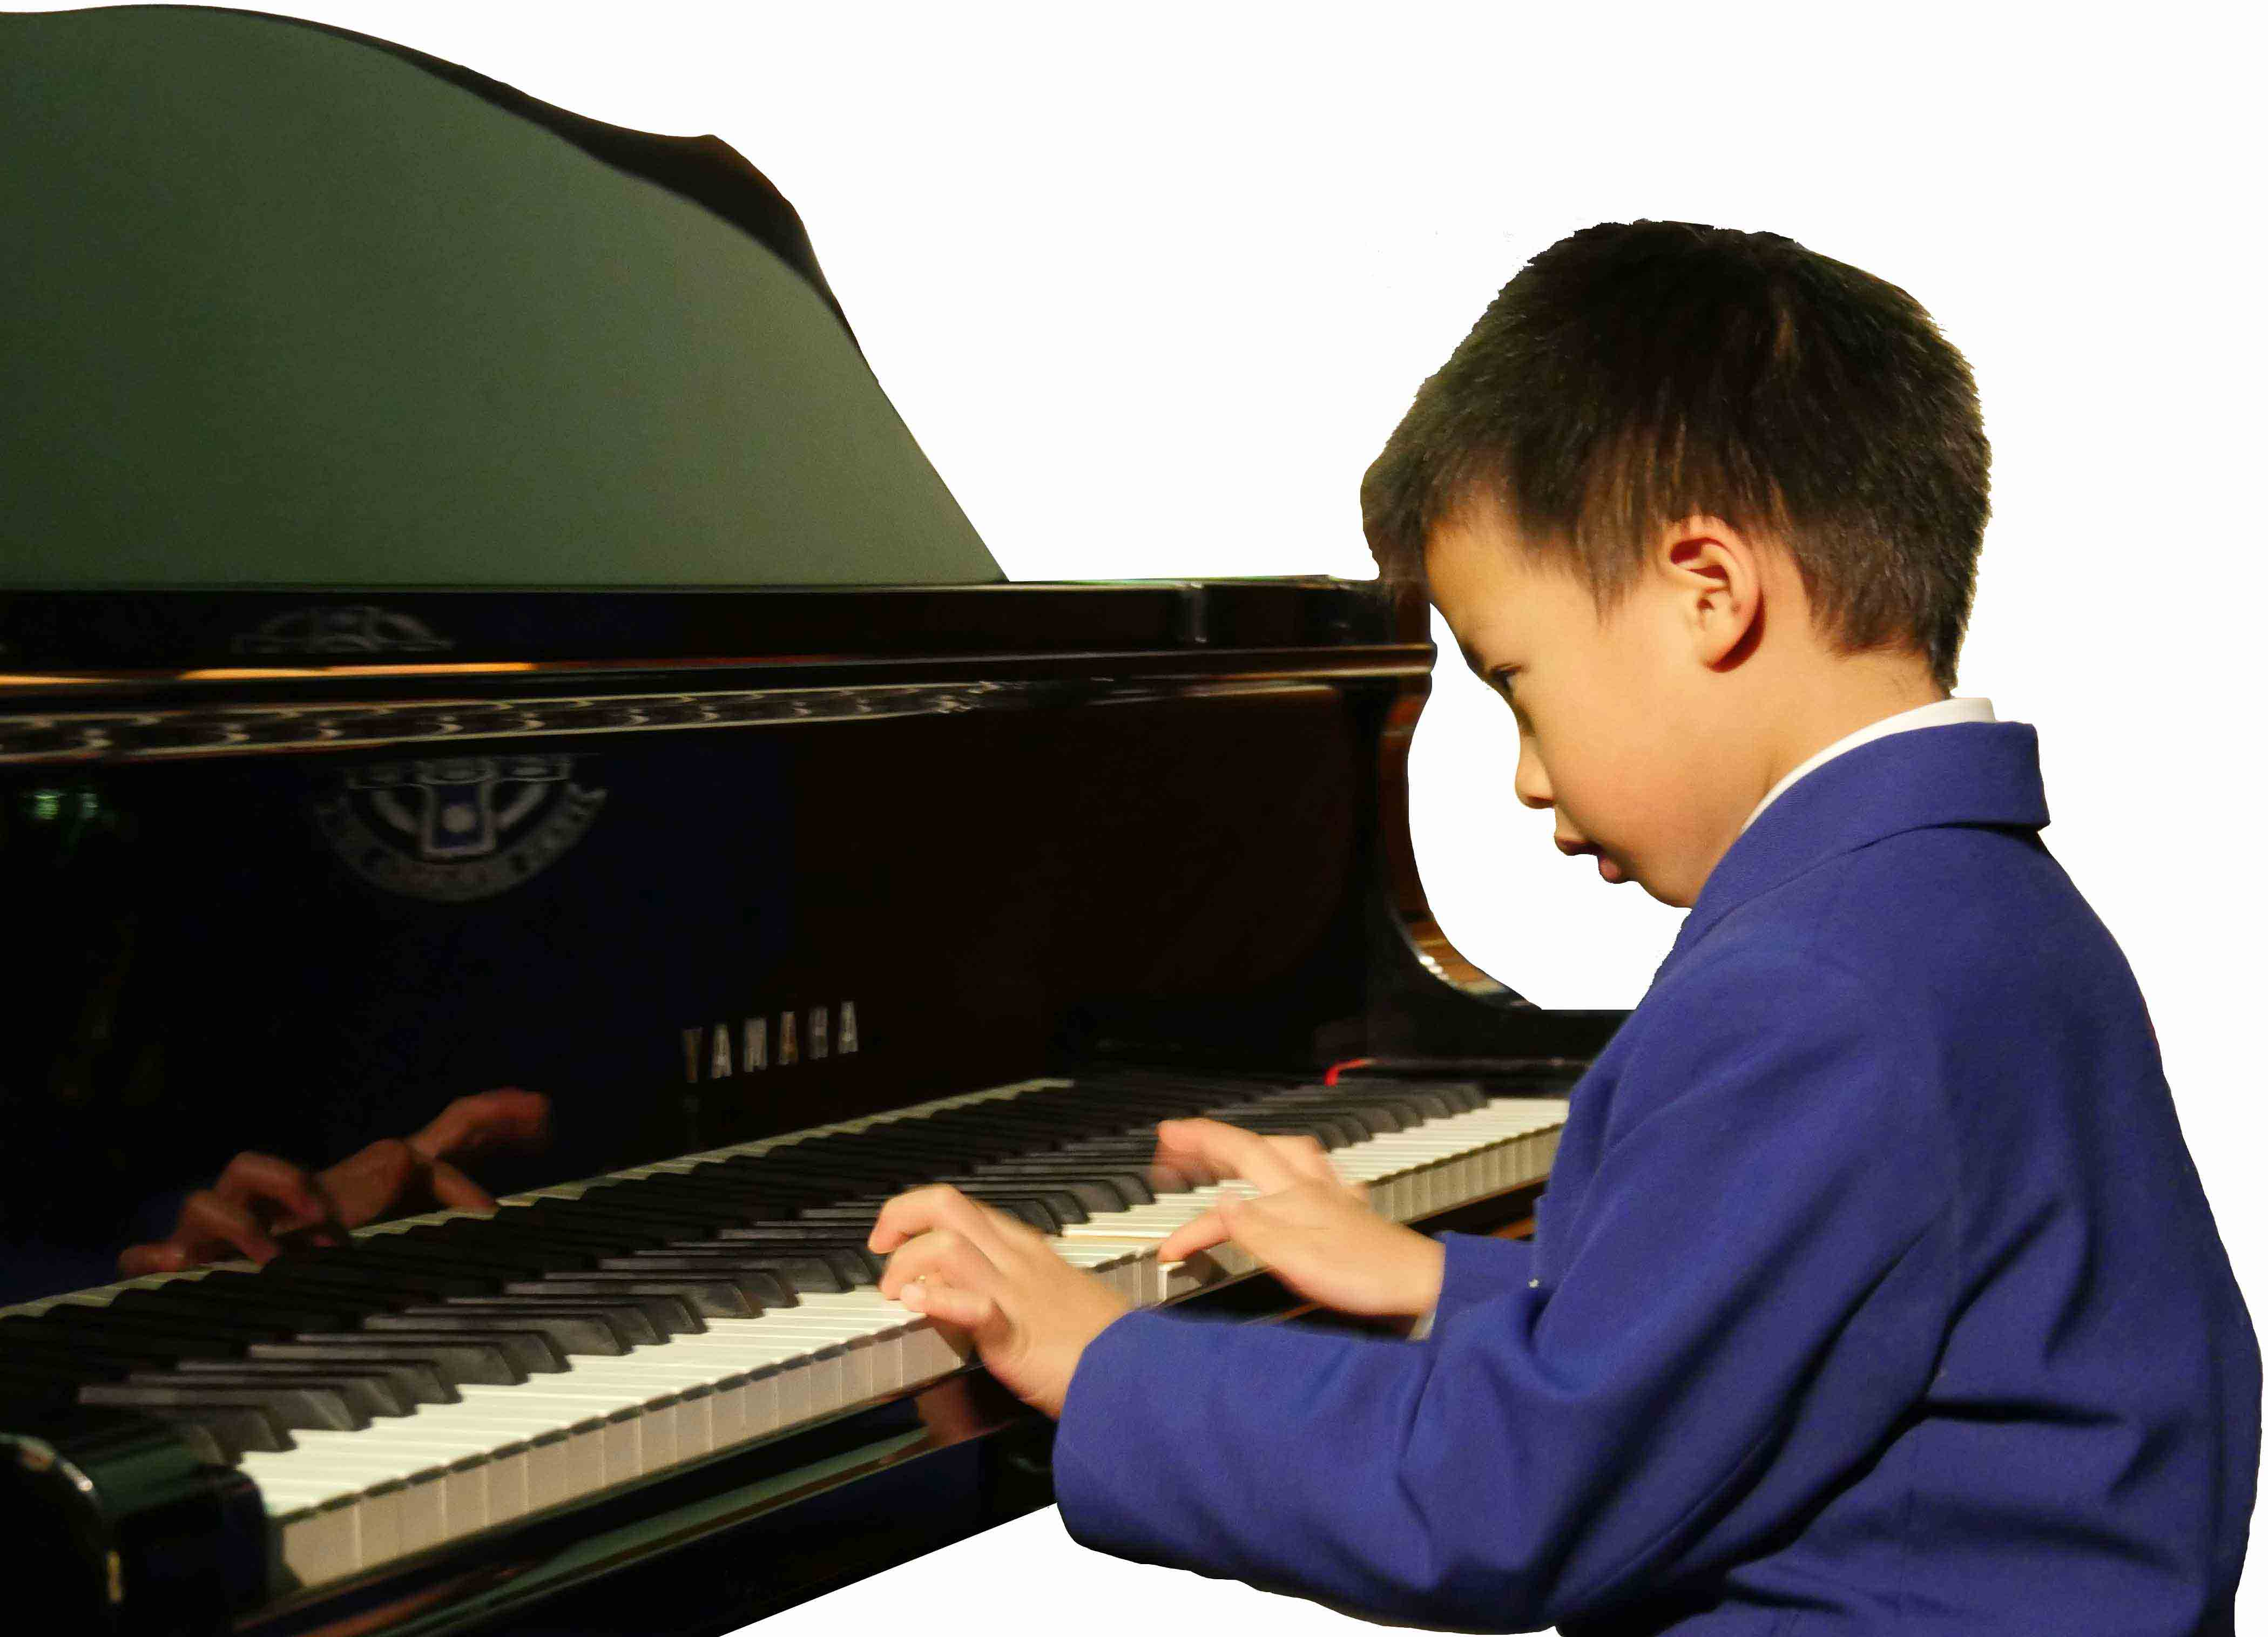 Saint-Kentigern-Boys'-School-Music-Piano.jpg